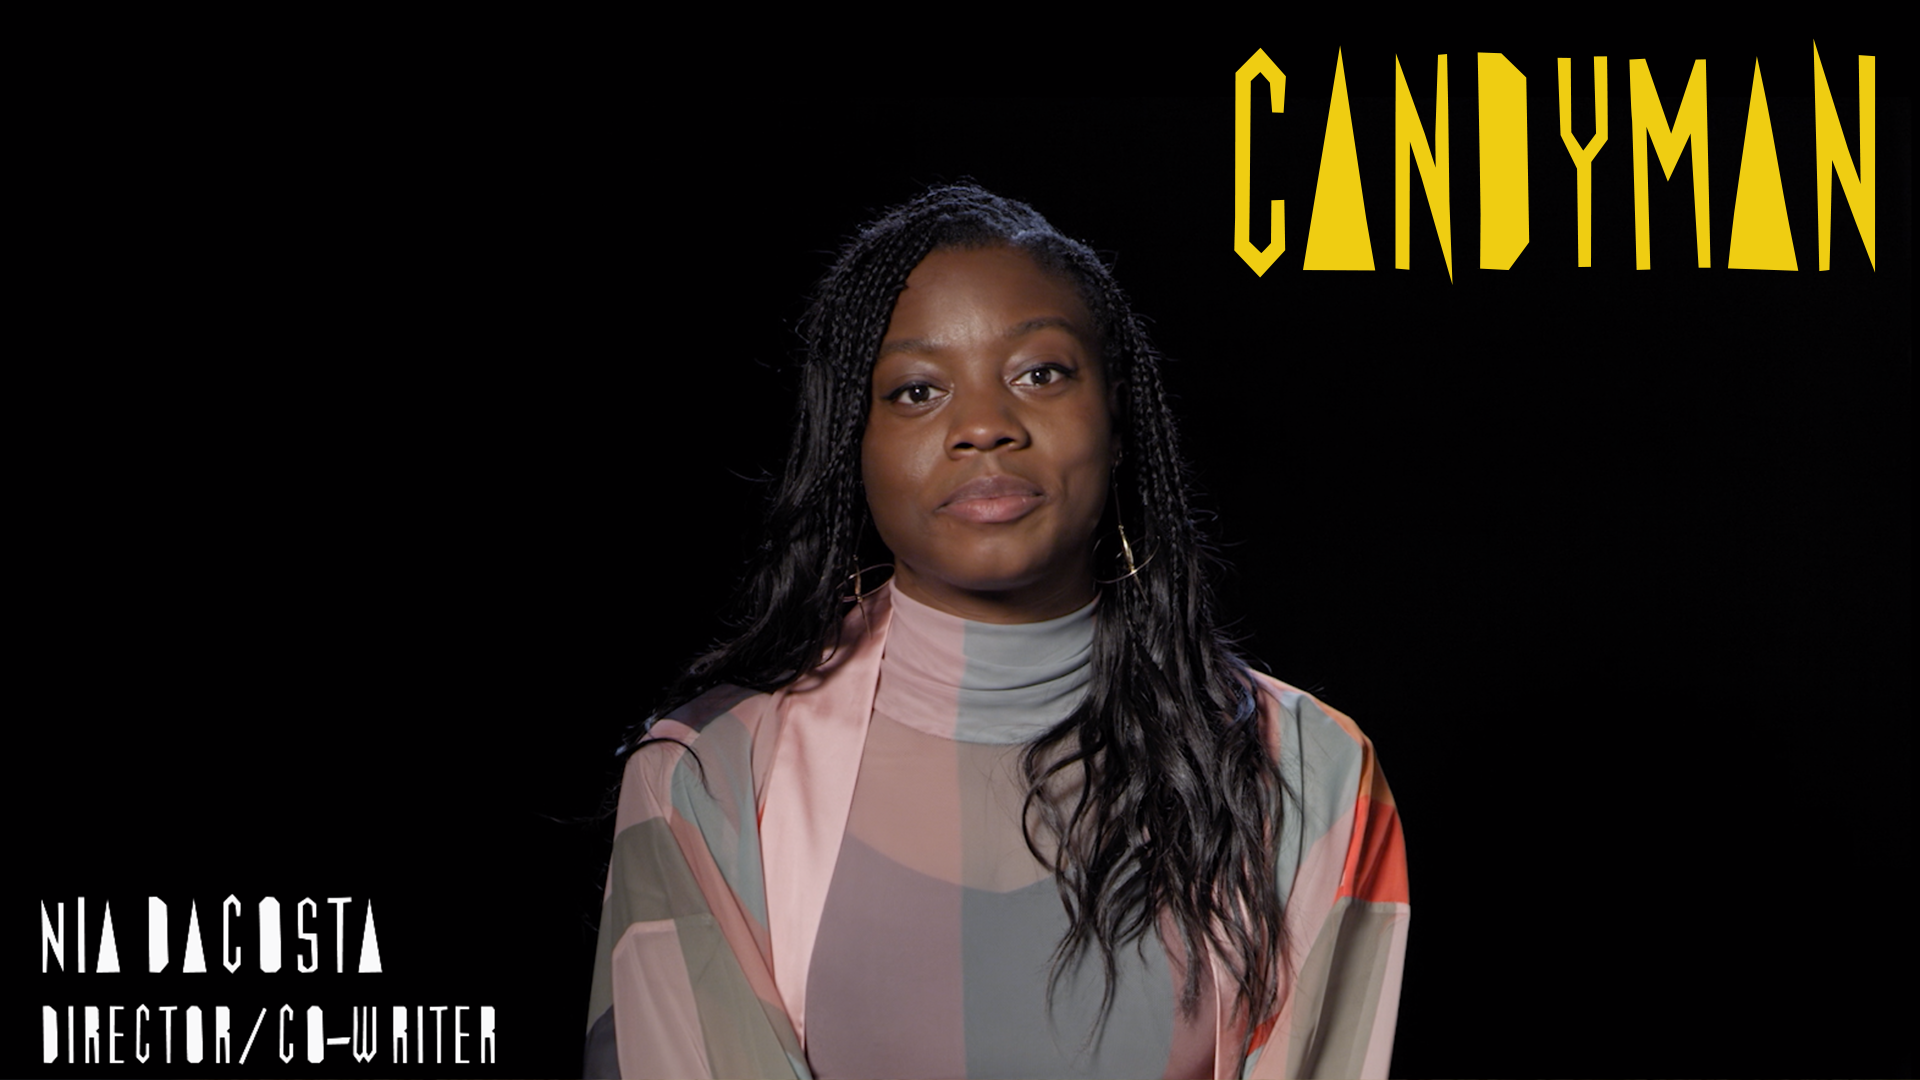 [News] Nia DaCosta Discusses CANDYMAN Ahead of Juneteenth